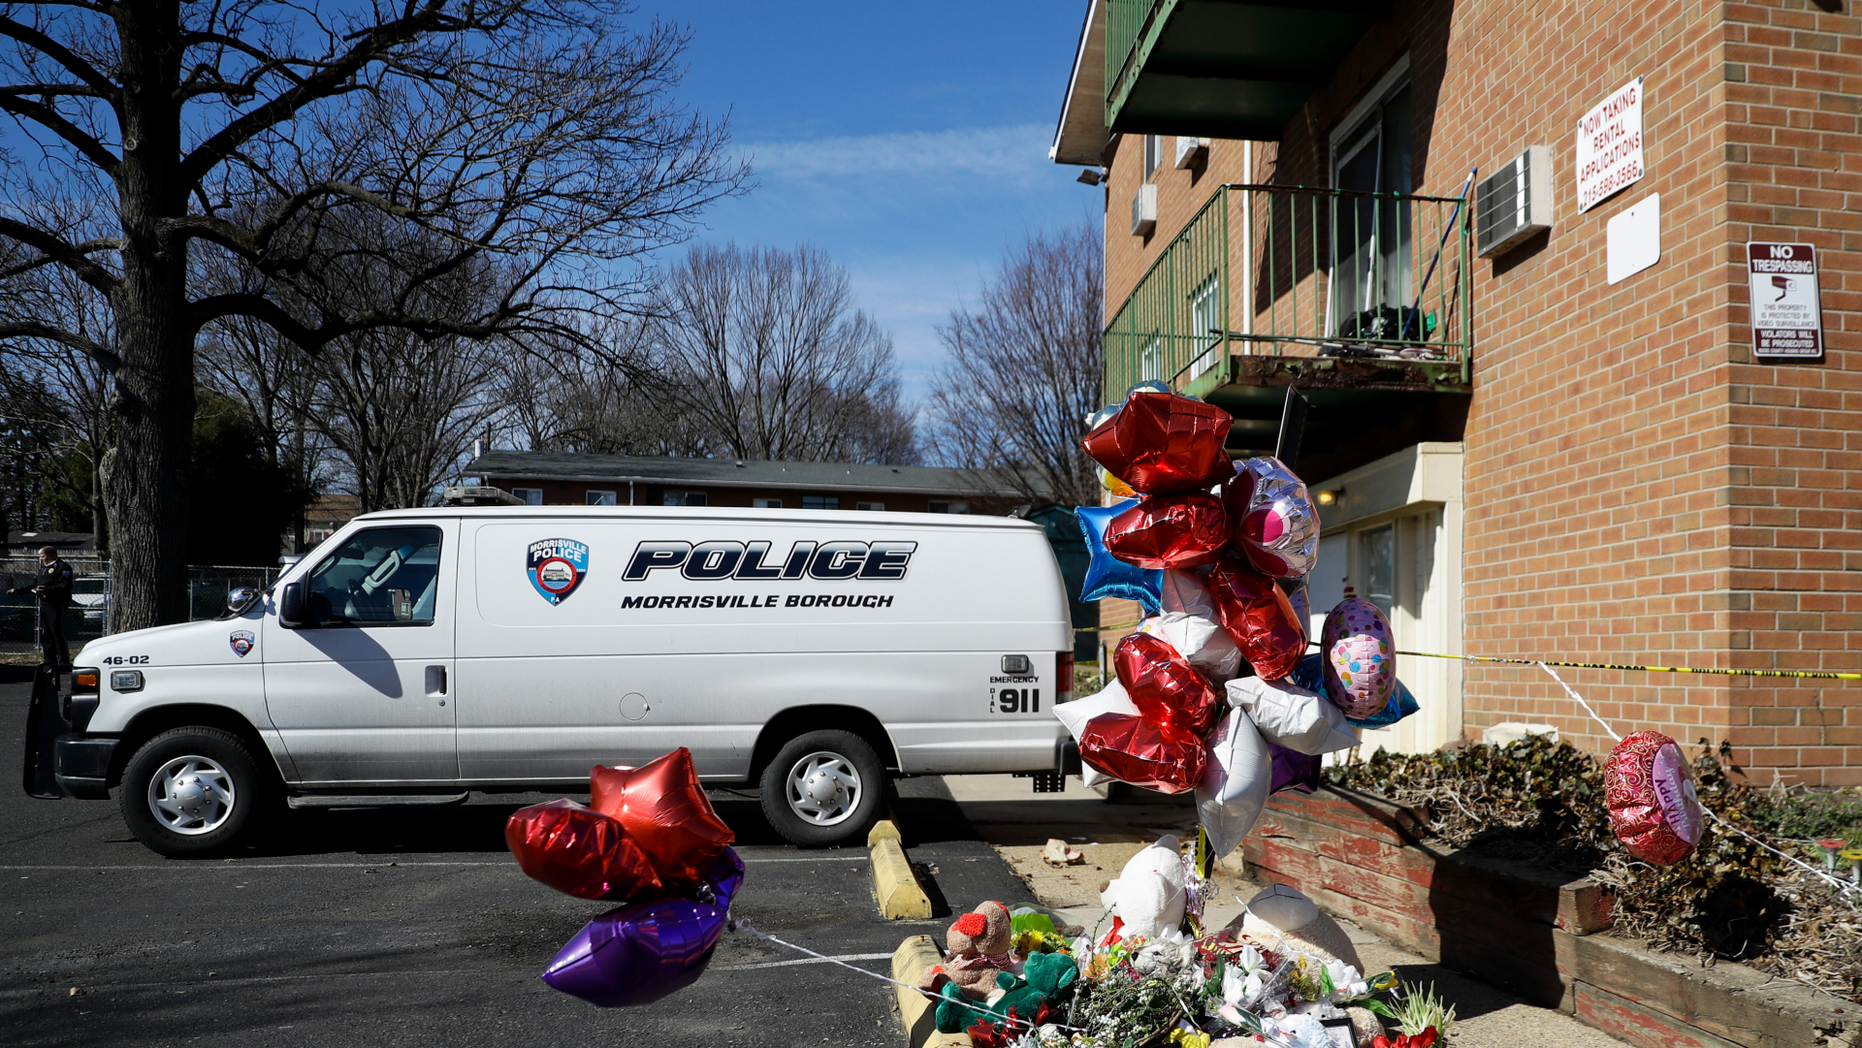 """A makeshift memorial is seen outside the Robert Morris Apartments, Thursday, Feb. 28, 2019, in Morrisville, Pa. A mother and her adult daughter killed five of their close relatives, including three children, and were found """"disoriented"""" after child welfare authorities arrived for a surprise visit to their trashed apartment outside Philadelphia, police and prosecutors said Tuesday. (AP Photo/Matt Slocum)"""